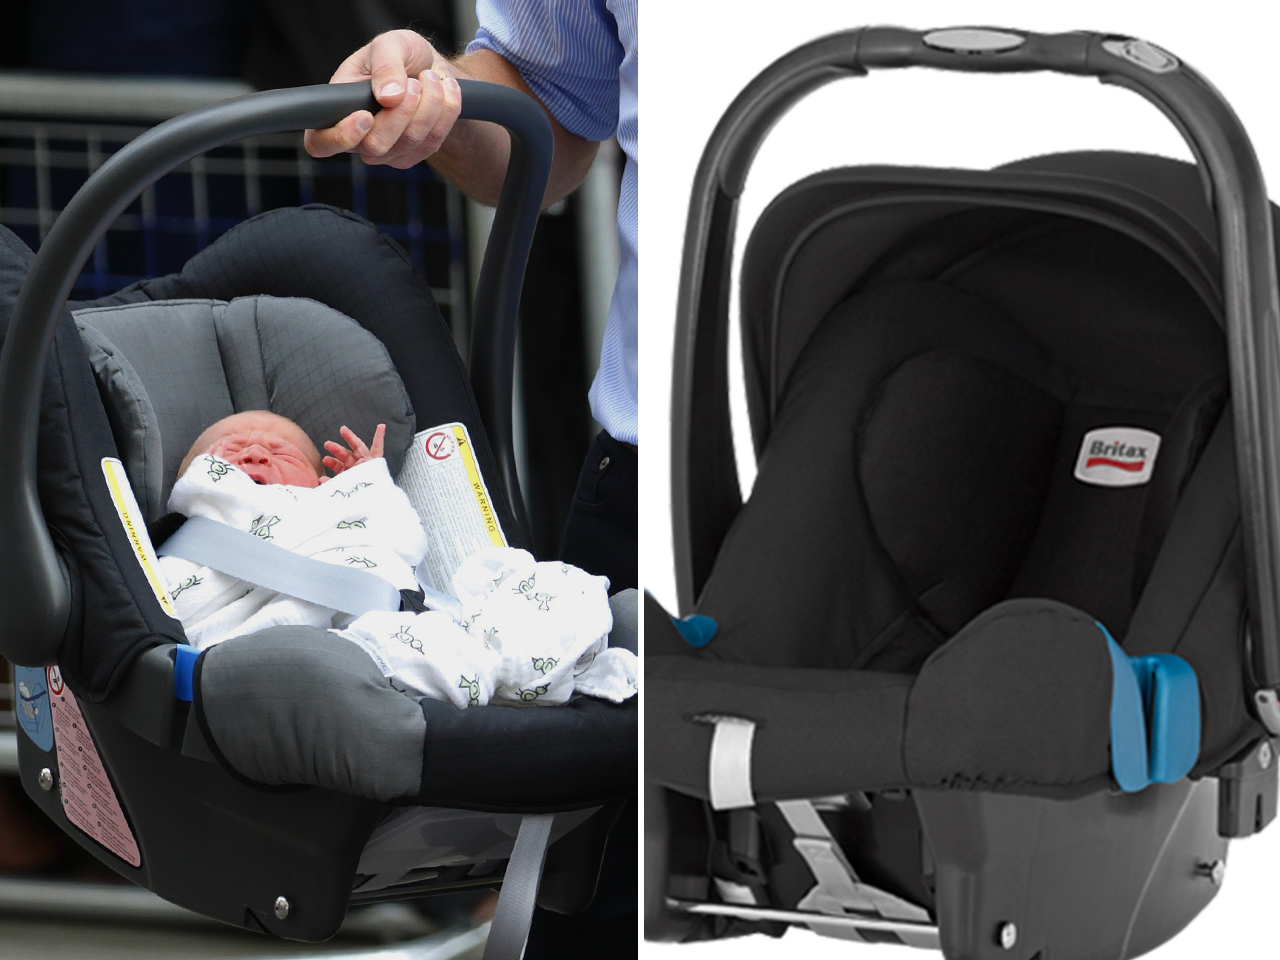 Trendsetting Tot Buyers Scoop Up Car Seat Blanket Fit For A Prince